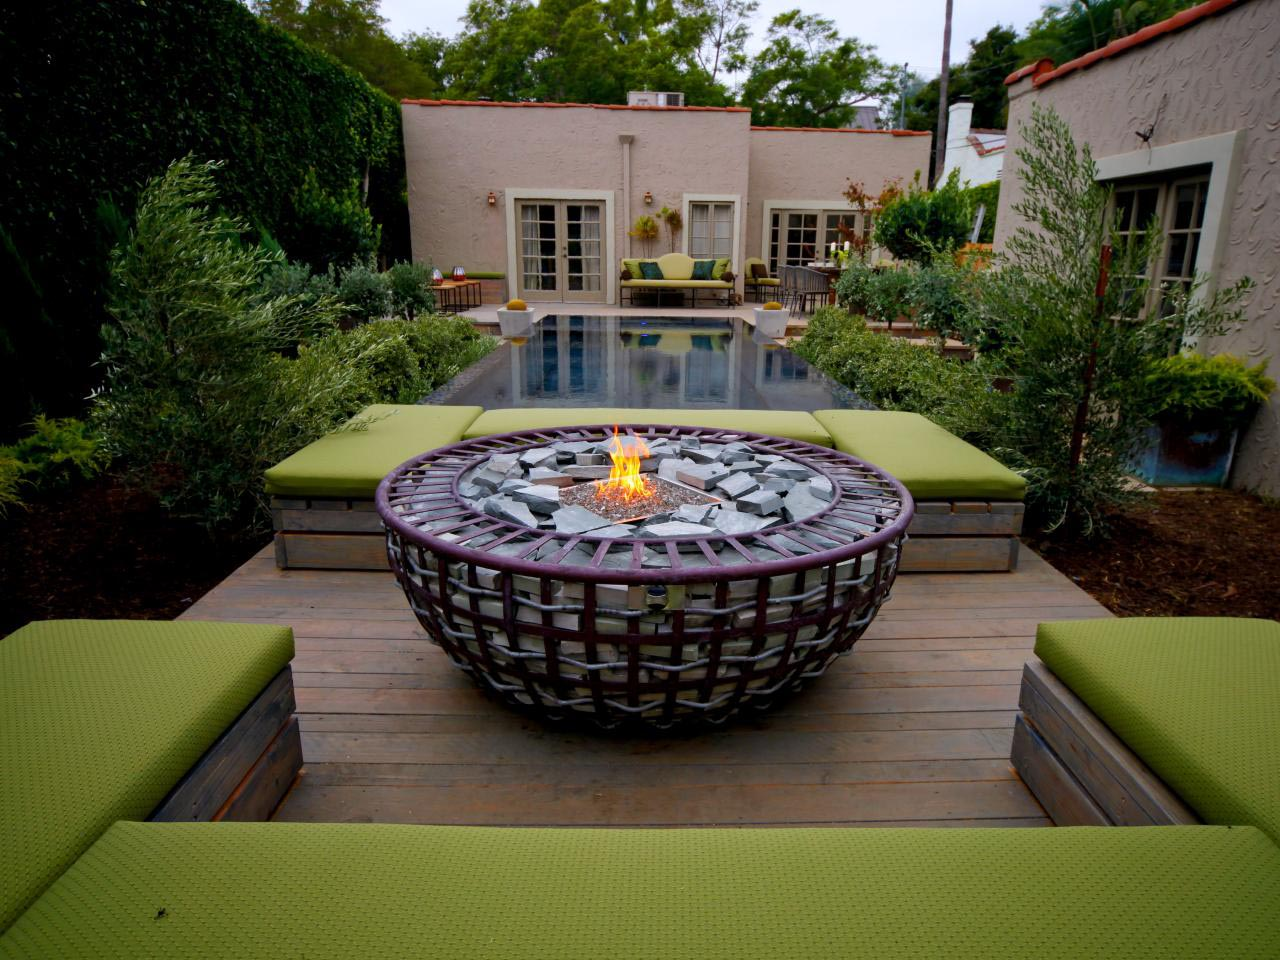 Simple backyard fire pit ideas fire pit design ideas for Easy garden patio ideas